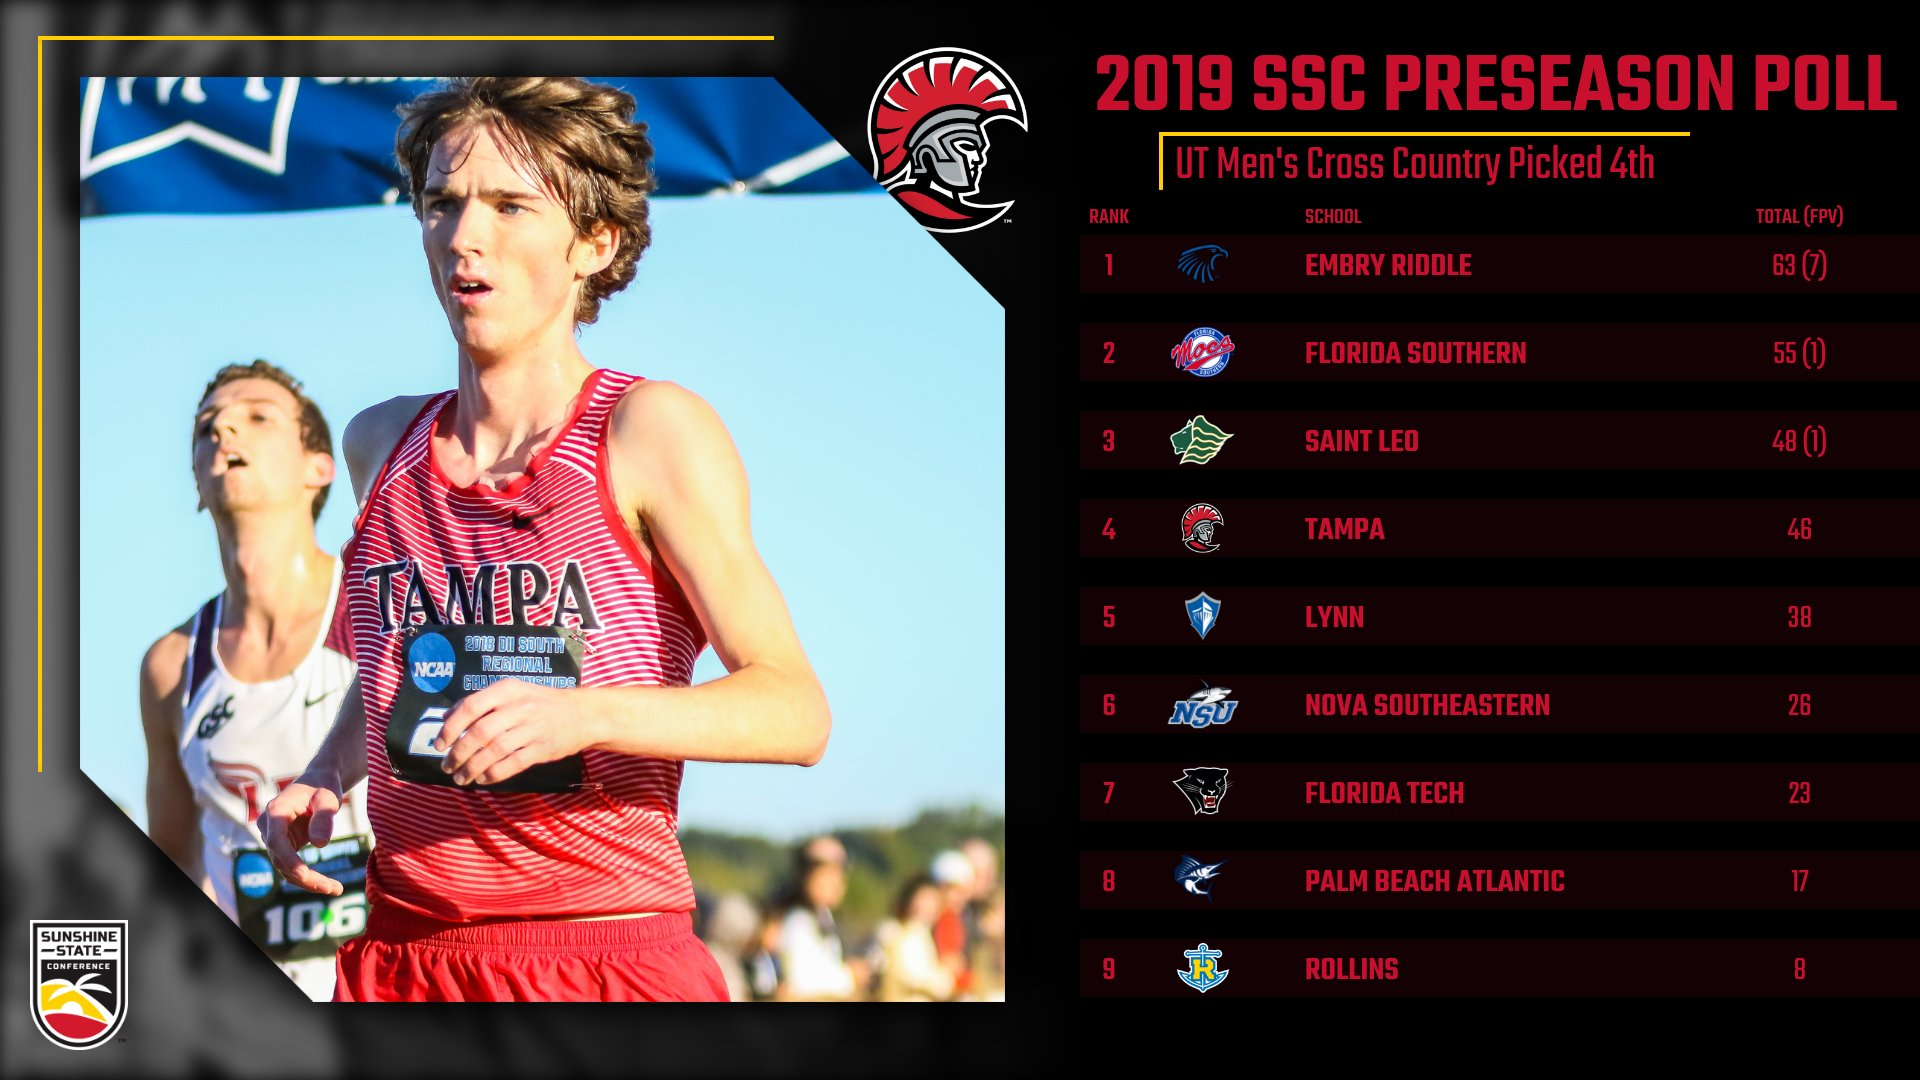 UT Men's Cross Country Selected Fourth in Preseason SSC Poll